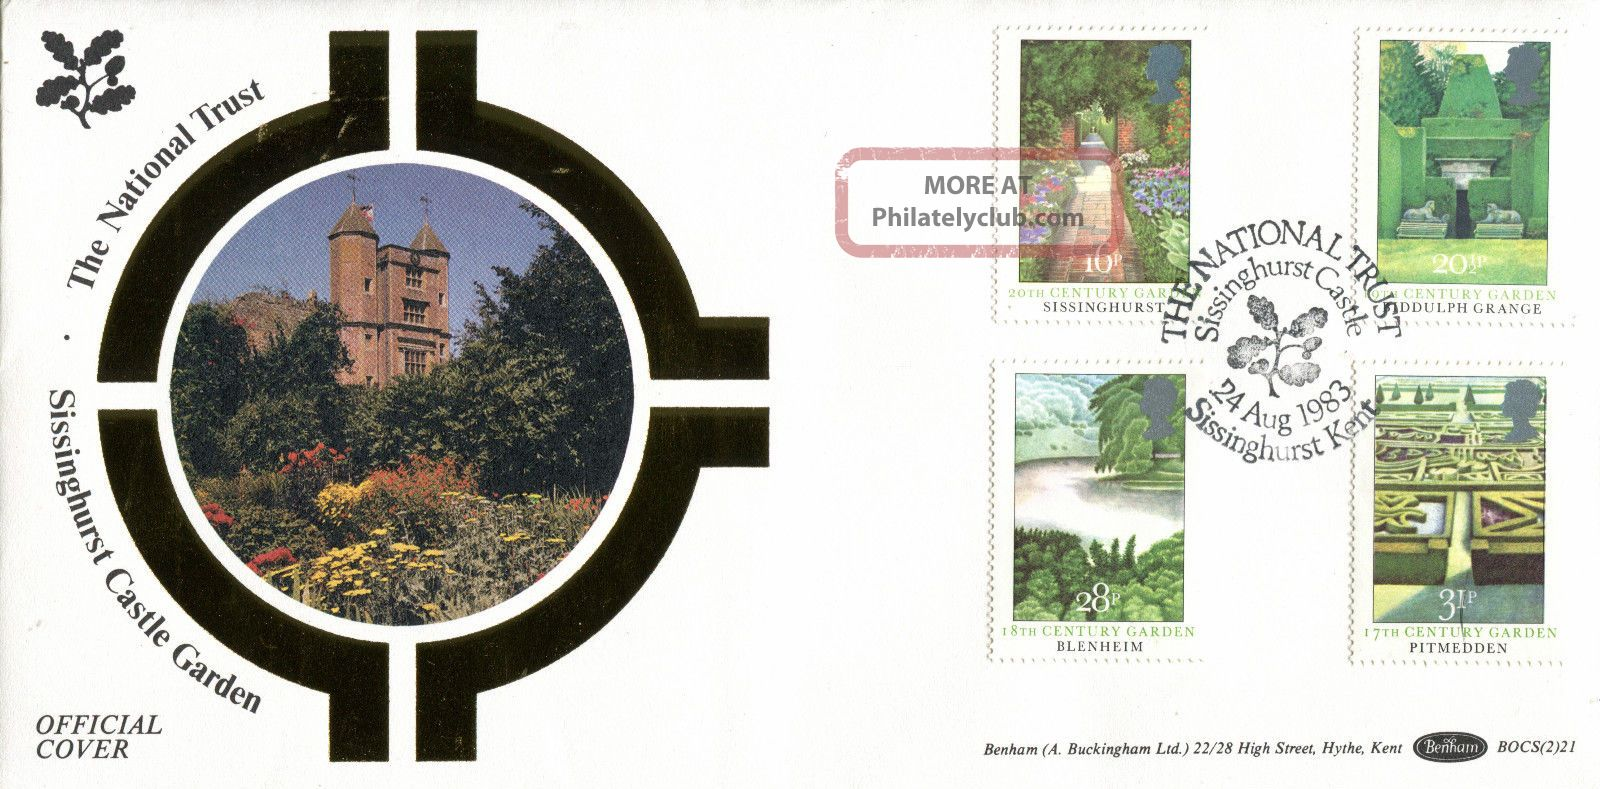 24 August 1983 British Gardens Benham Bocs (2) 21 First Day Cover Sissinghurst Topical Stamps photo